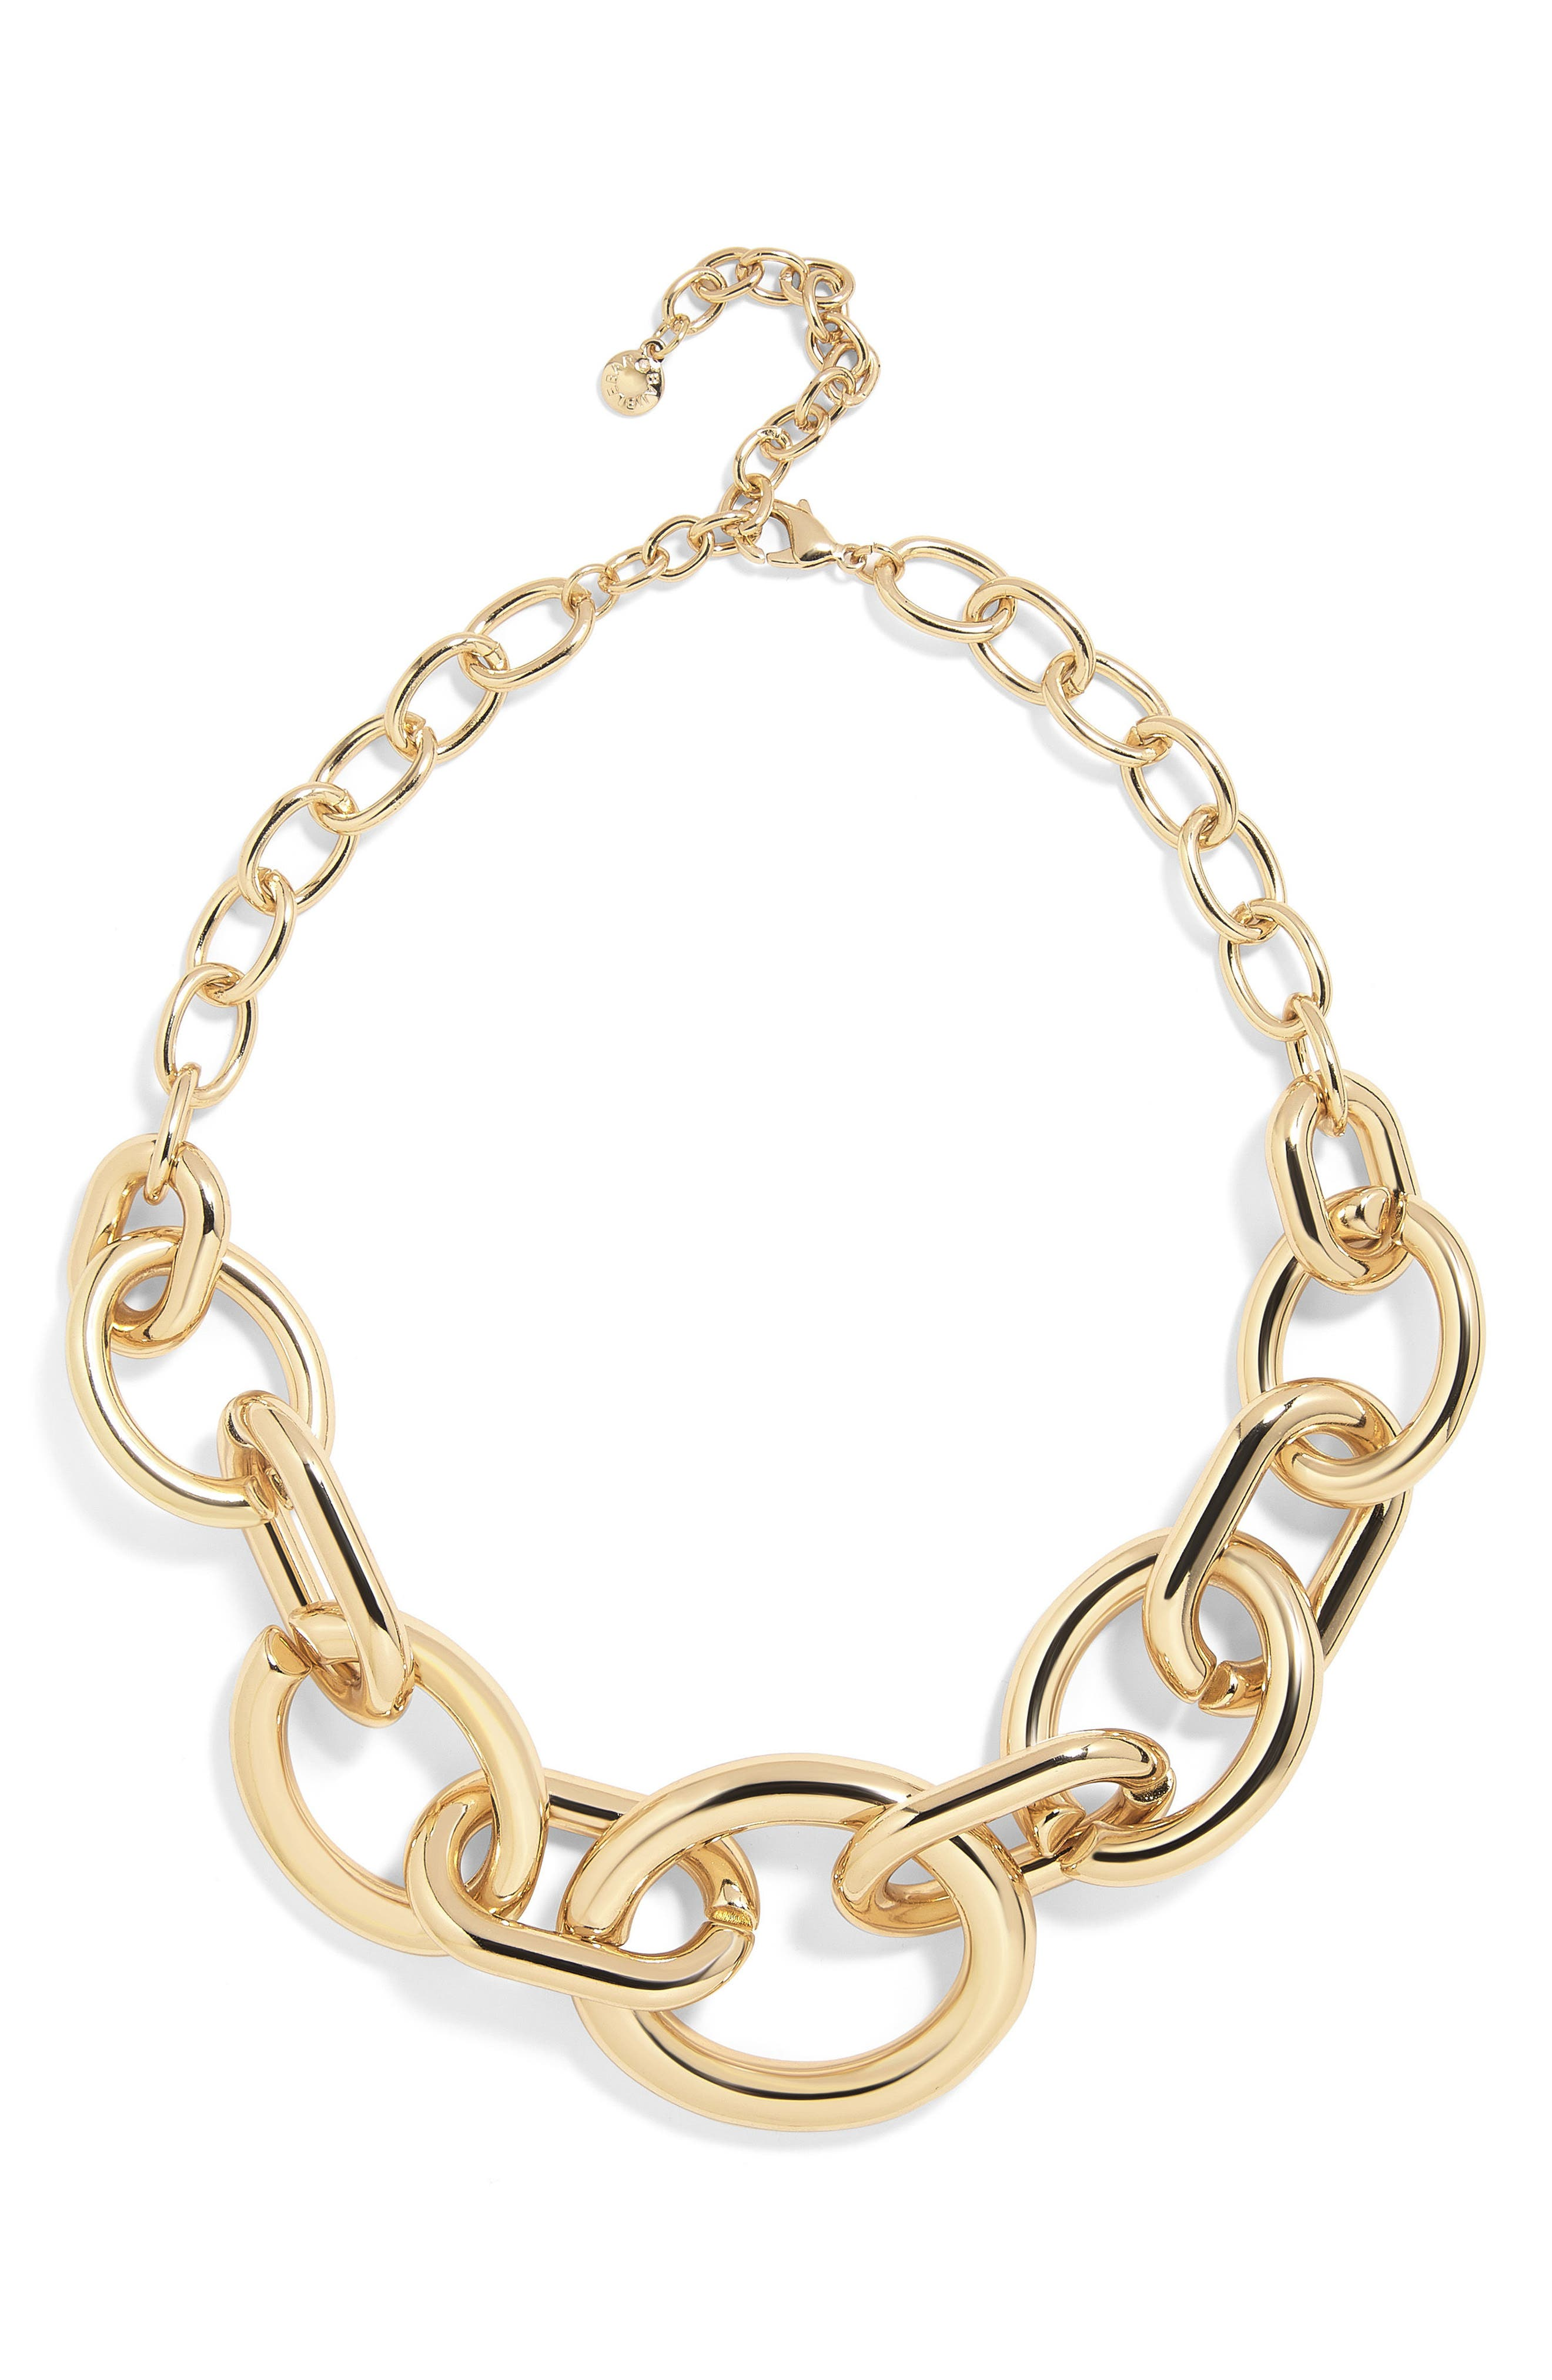 Mardie Linked Statement Necklace,                             Main thumbnail 1, color,                             719